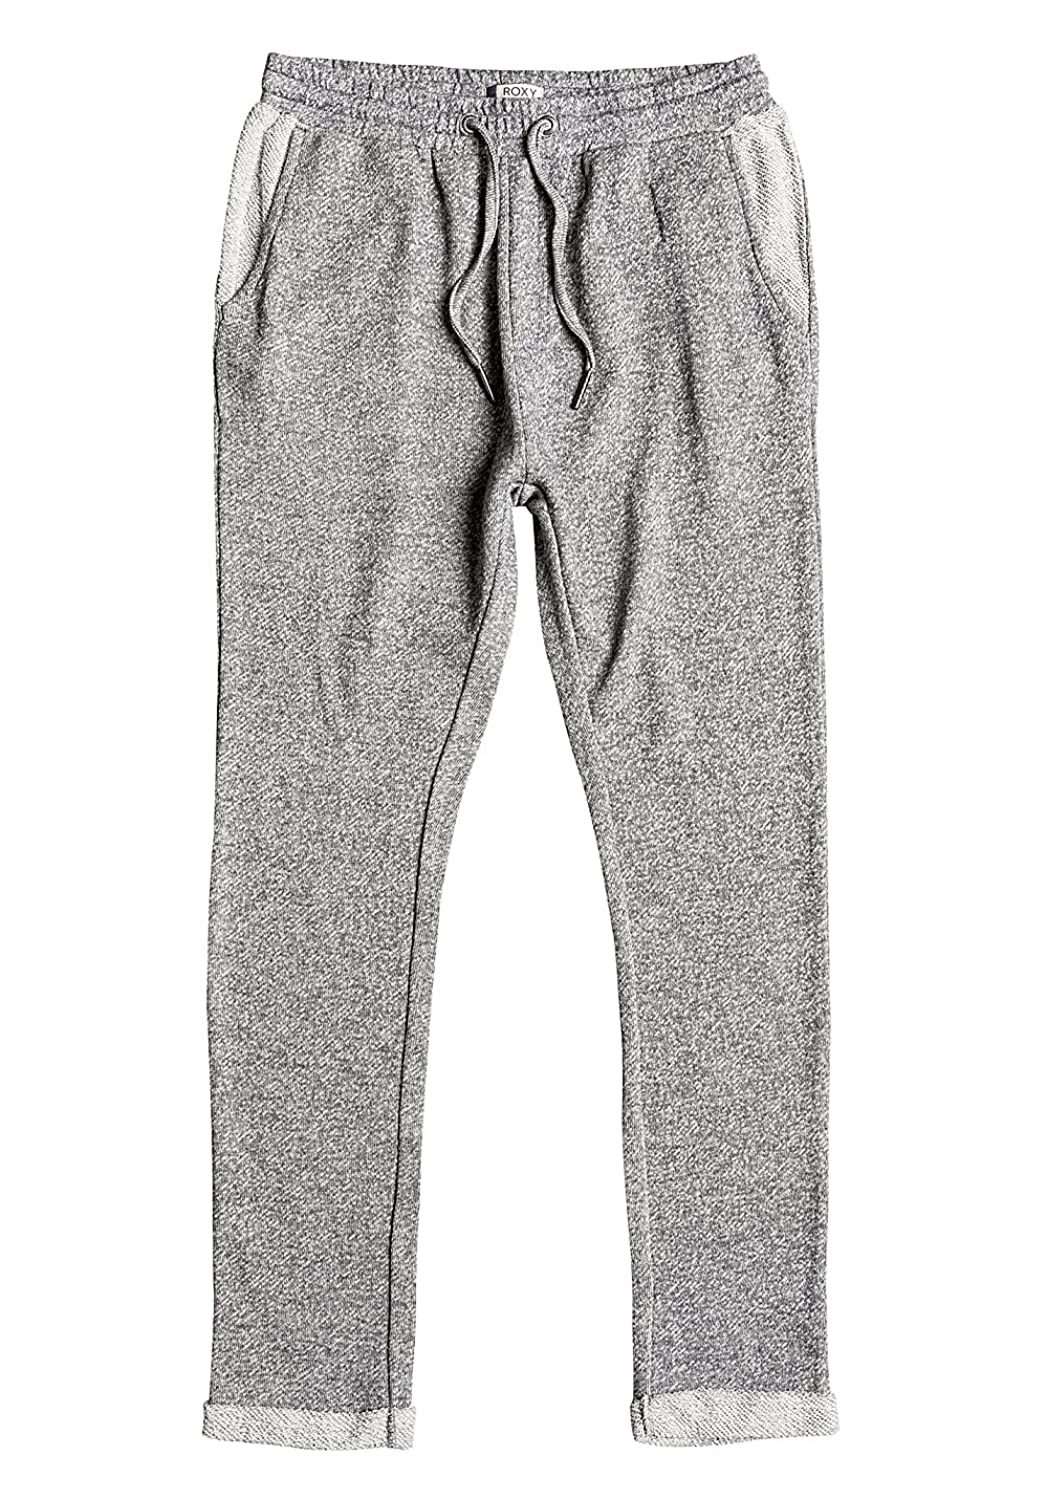 Damen Jogginghose Roxy Signature Feeling Jogging Pants